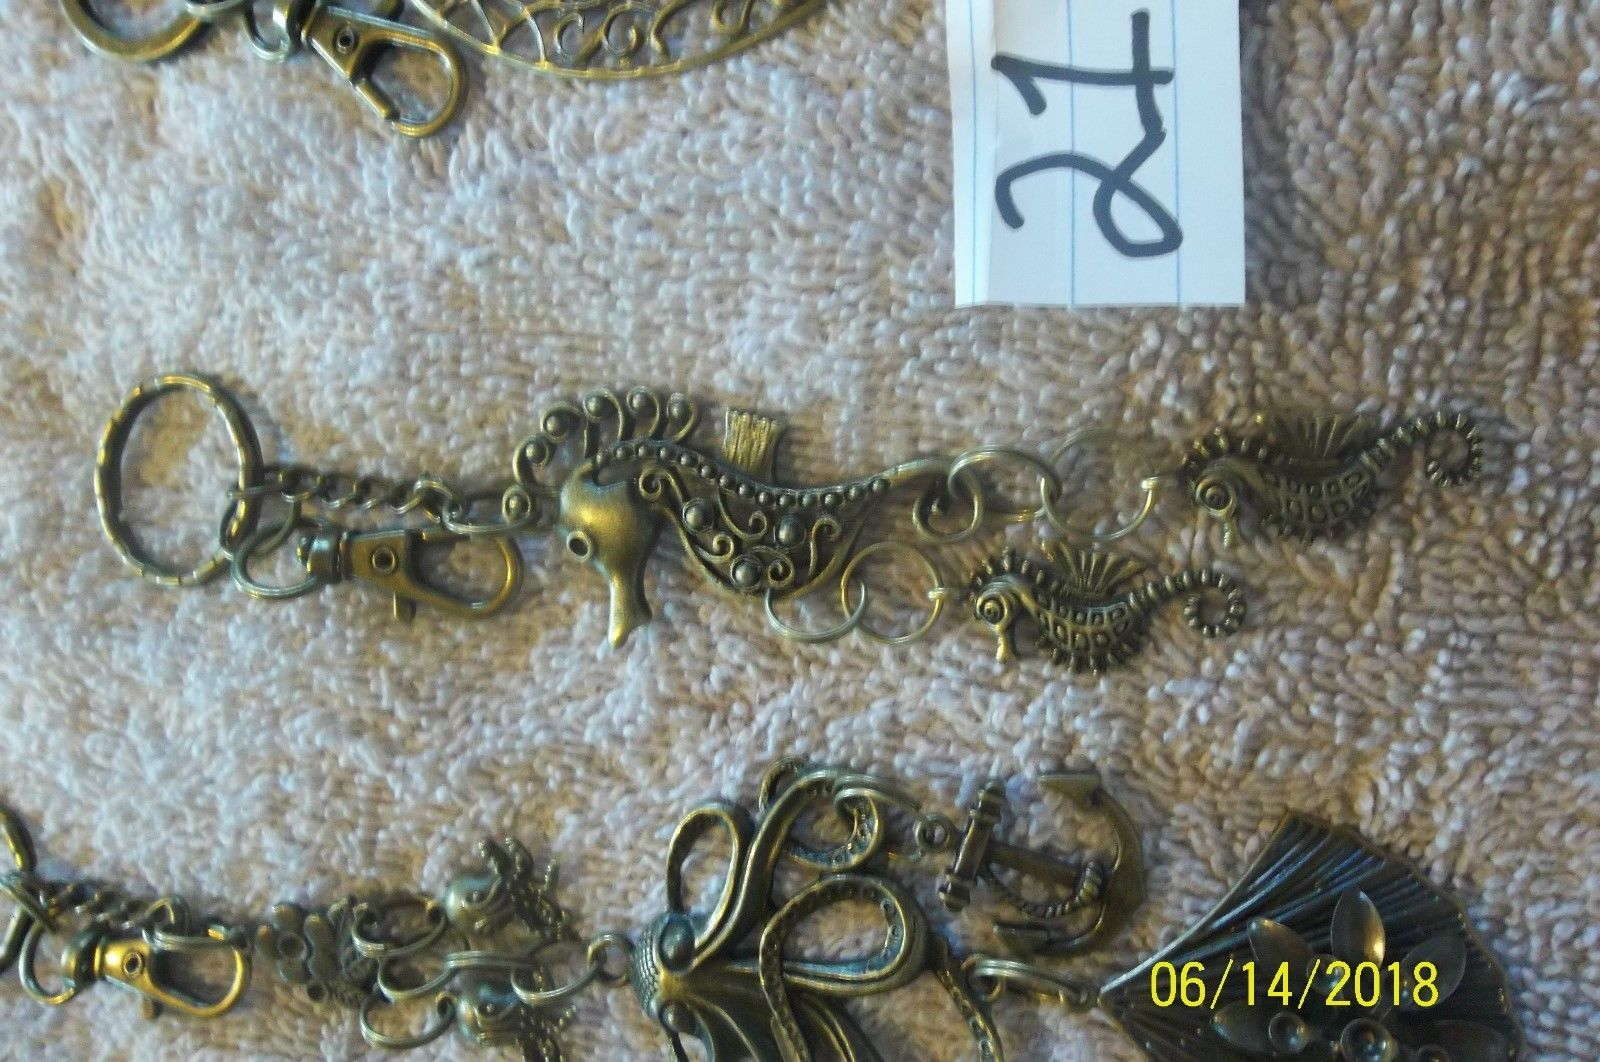 #purse jewelry bronze color keychain backpack filigree charms lot of 3 floral 21 image 4